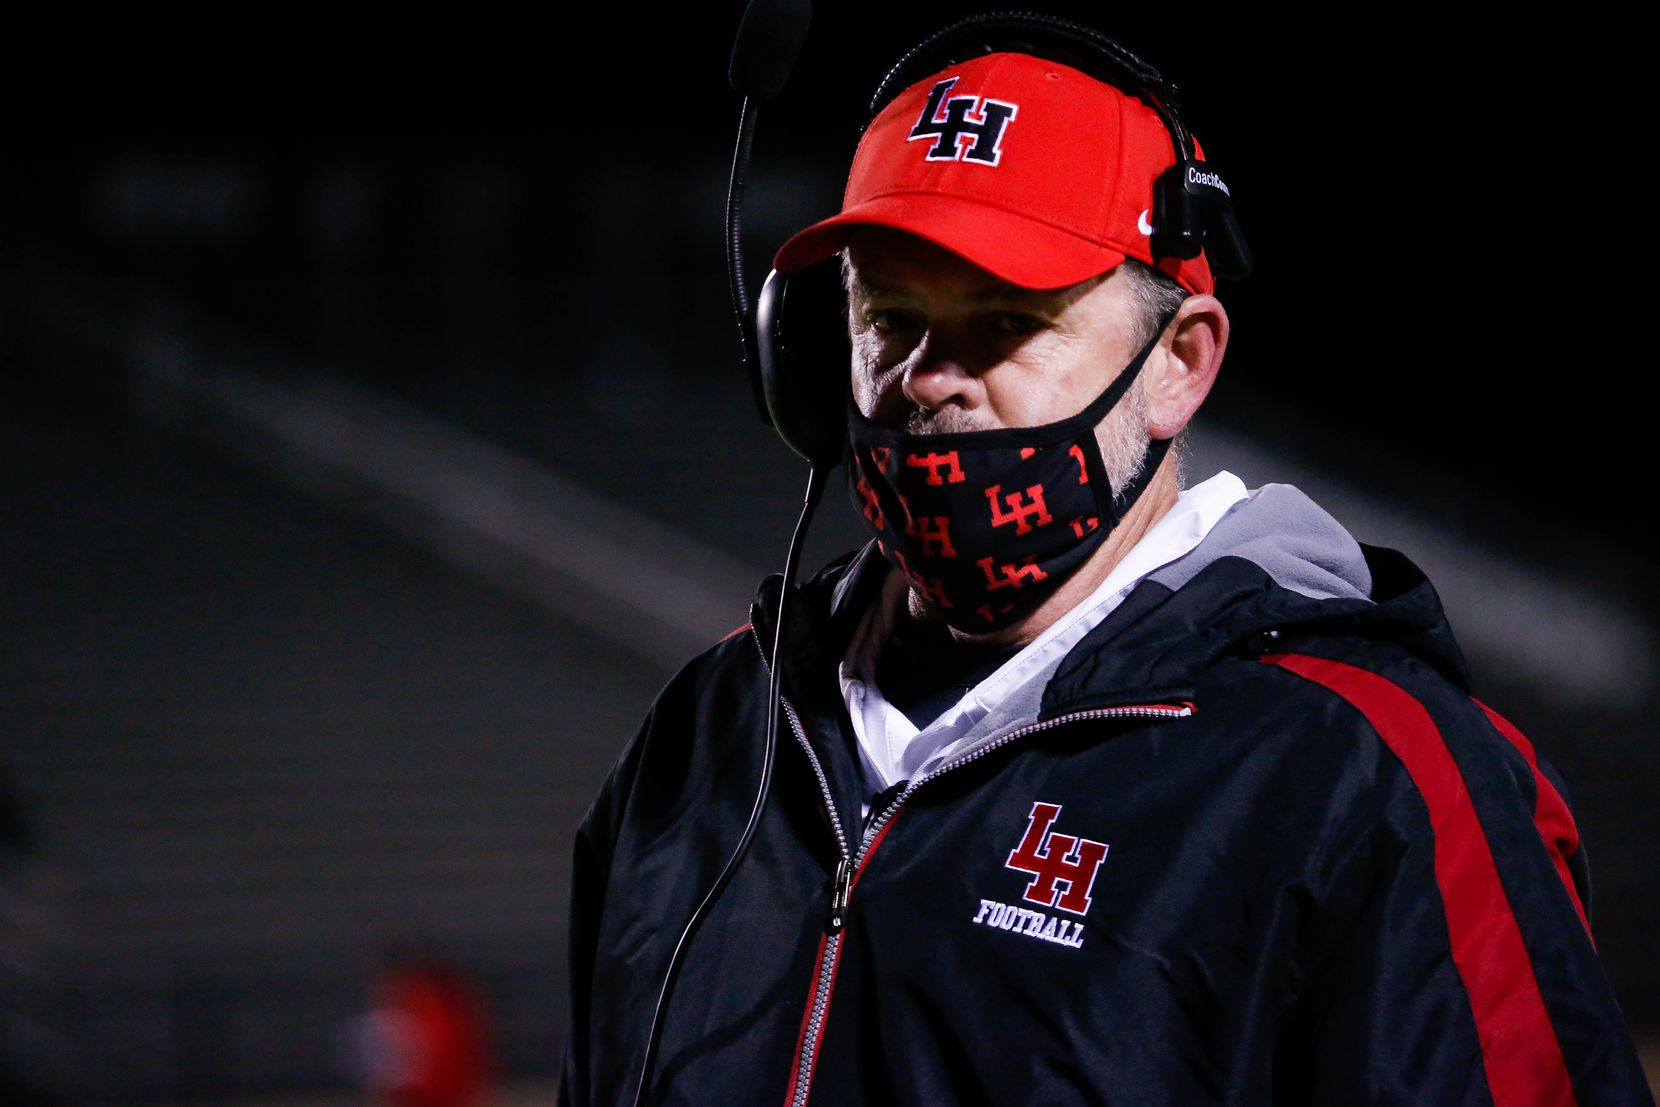 Lake Highlands' coach Lonnie Jordan watches the game during the fourth quarter of a high school football game against Irving MacArthur at Joy & Ralph Ellis Stadium in Irving on Friday, Oct. 23, 2020. (Juan Figueroa/ The Dallas Morning News)